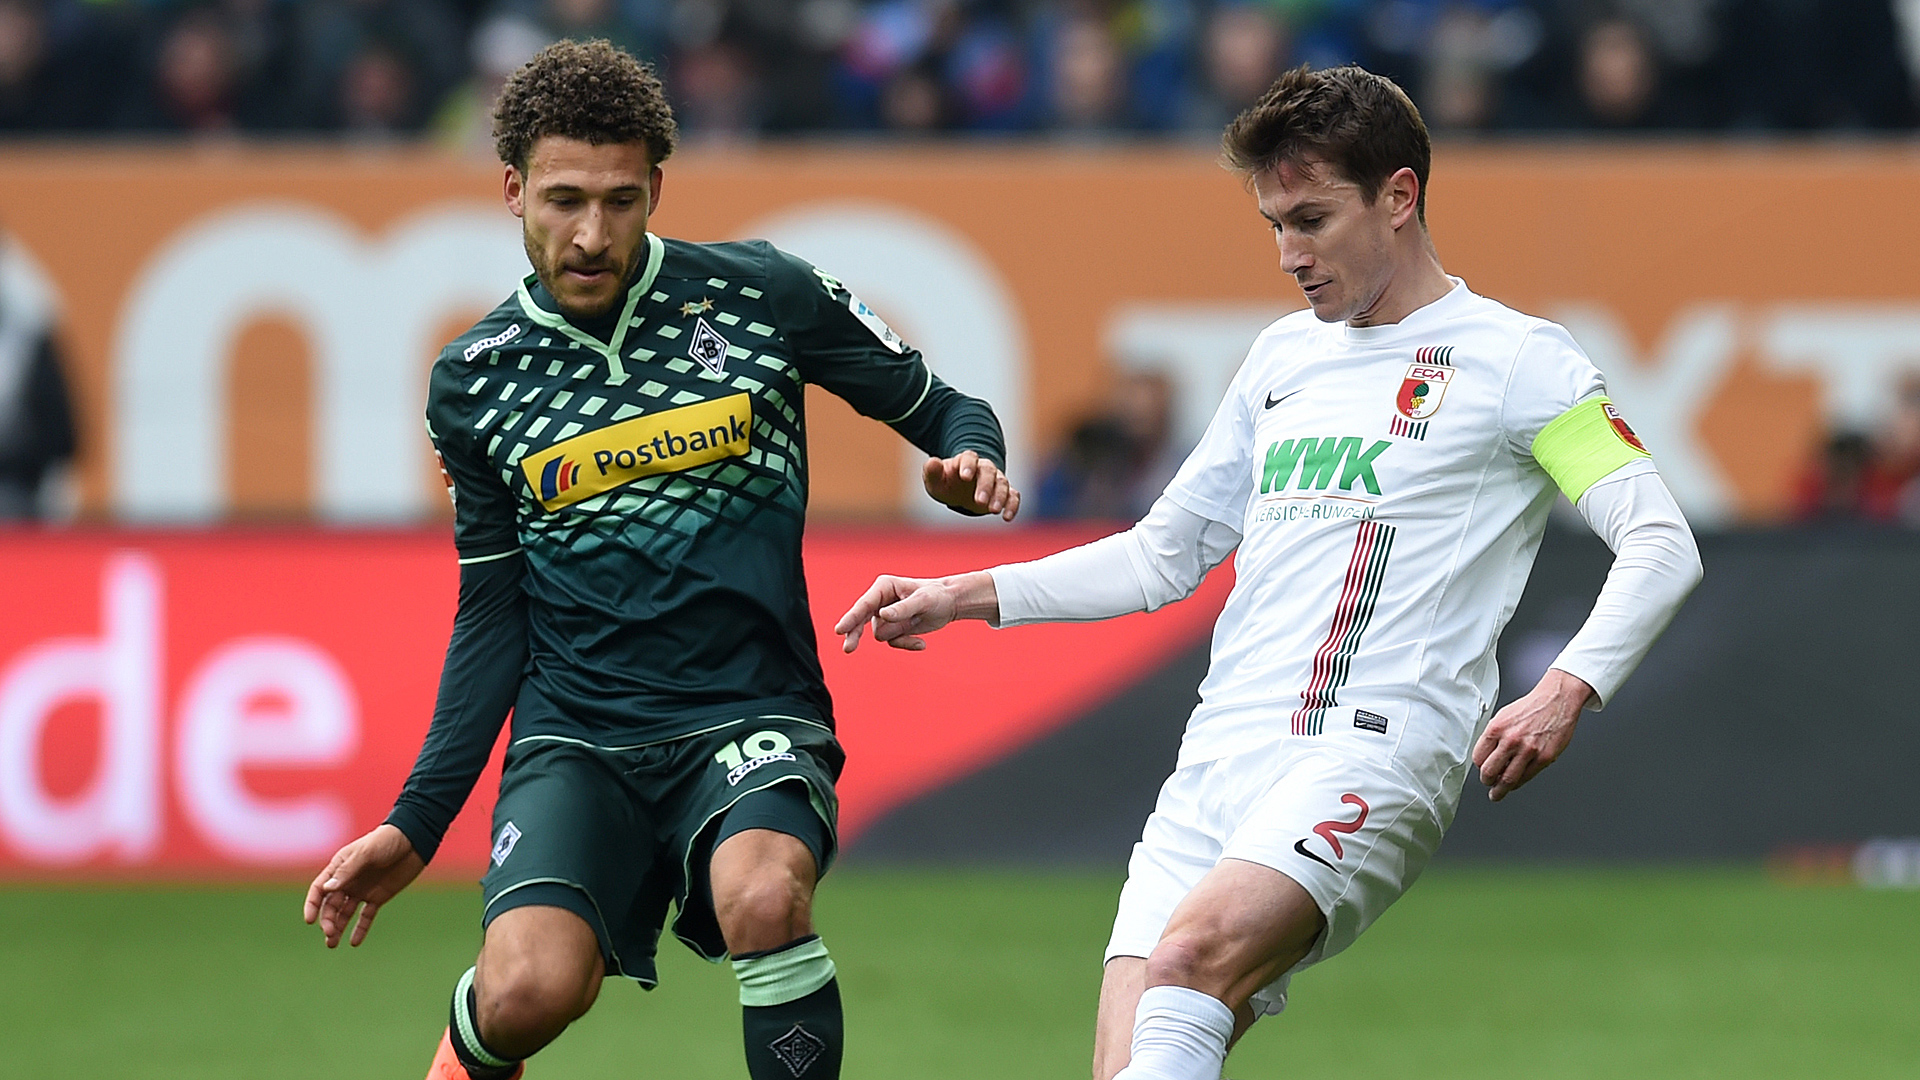 Video: Augsburg vs Borussia M gladbach